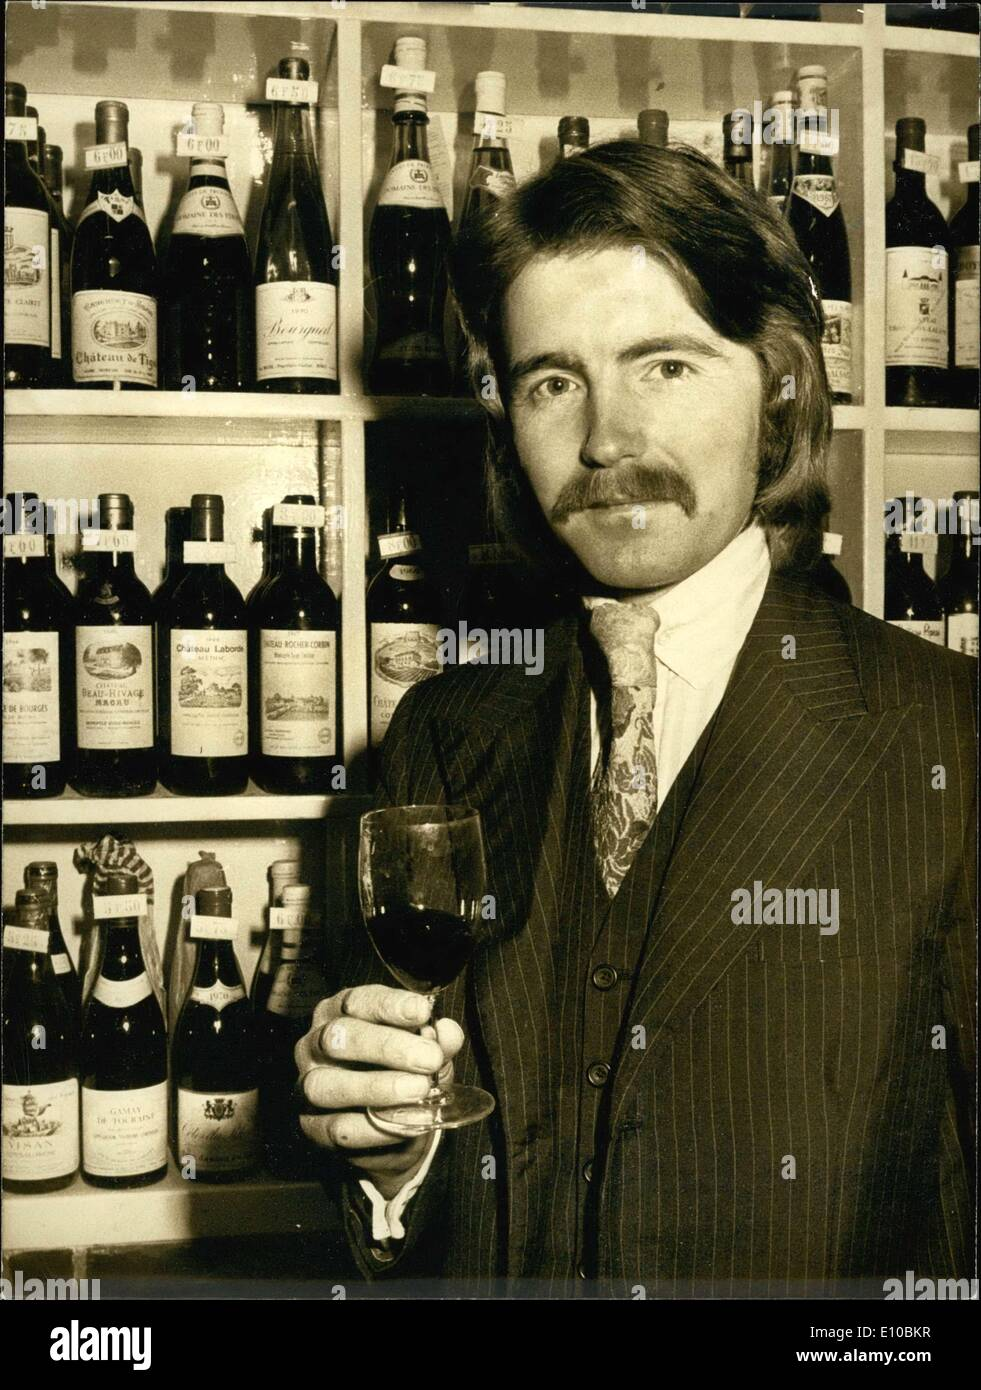 Mar. 07, 1972 - It is not impossible to find a Frenchman selling whiskey in London, but the French find it funny Stock Photo